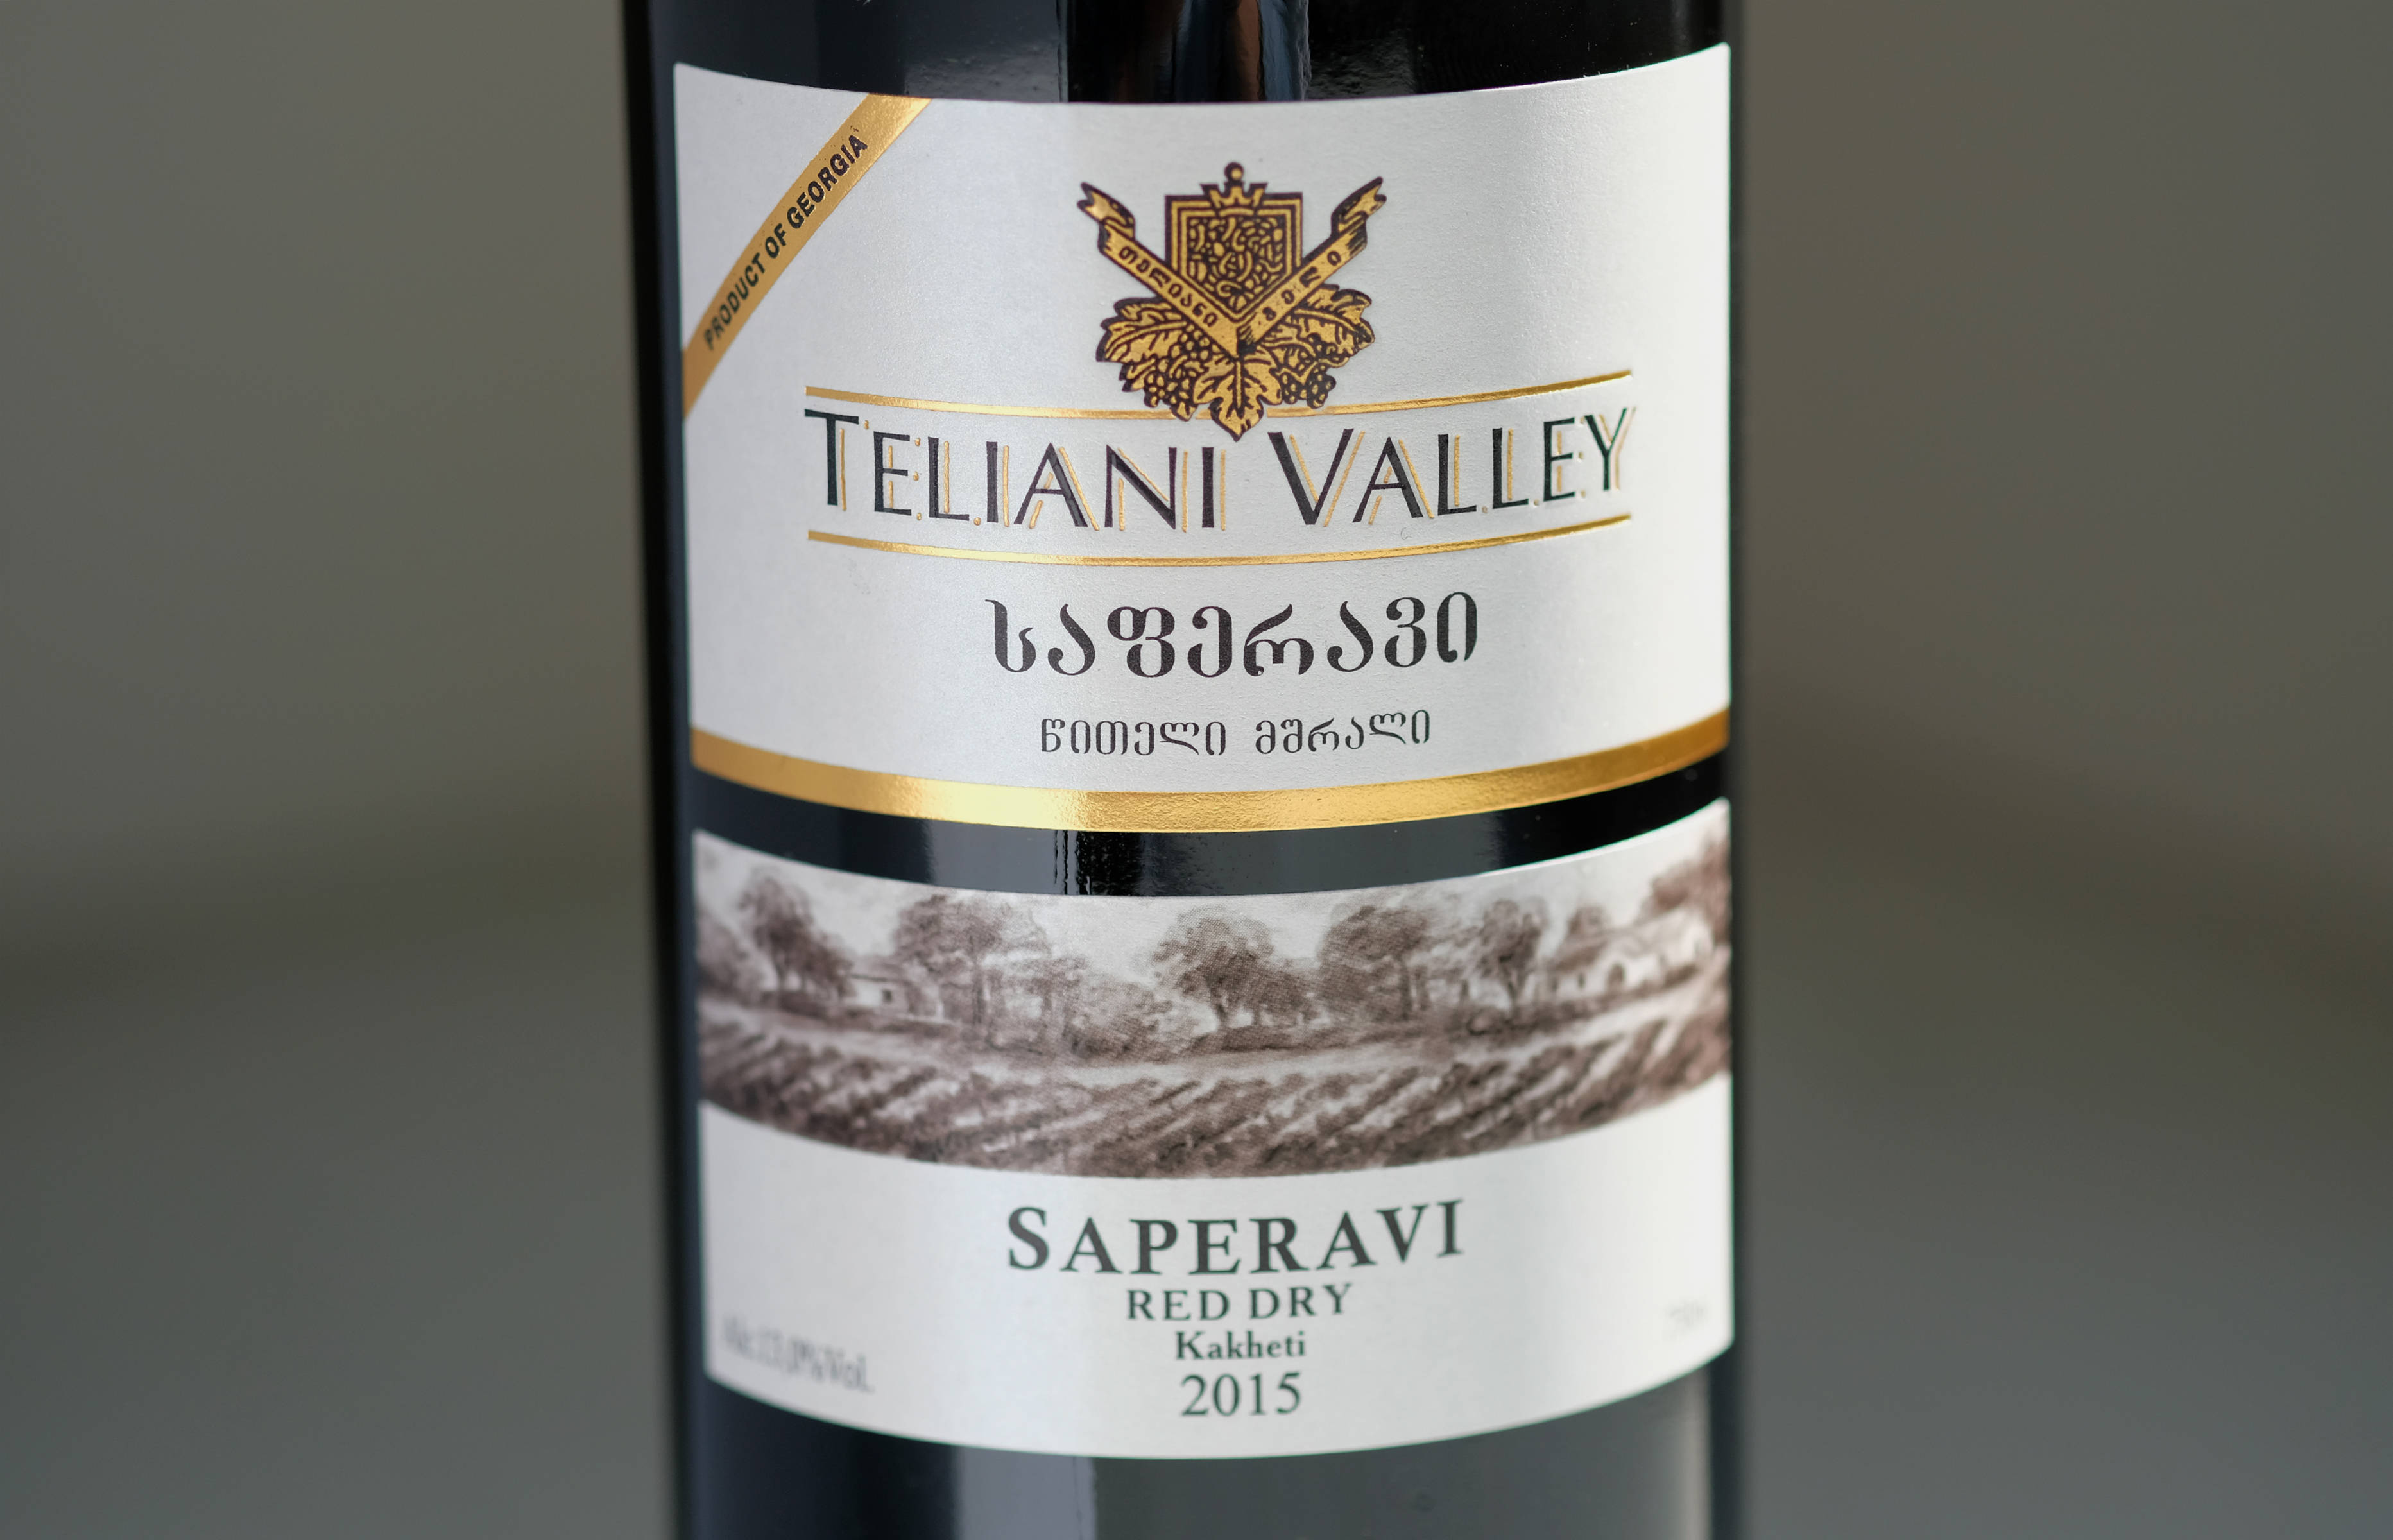 Teliani Valley´s saperavi dry red wine from Georgia.